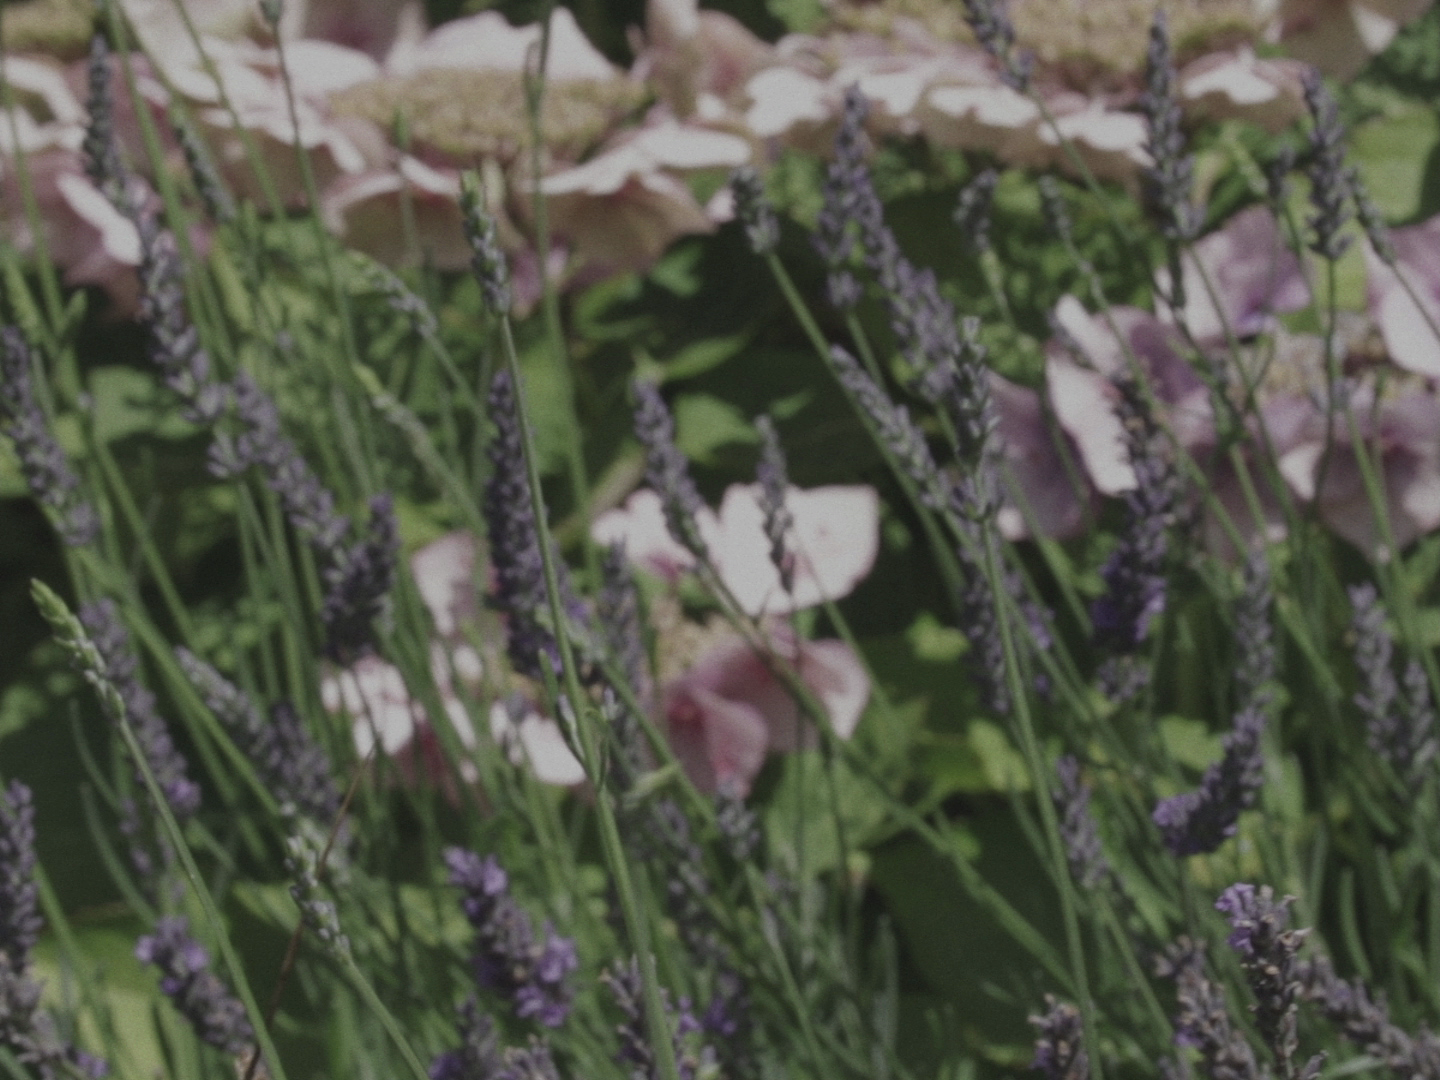 Still from the poetry film Morning. It's a close-up of flowers, including lavender.